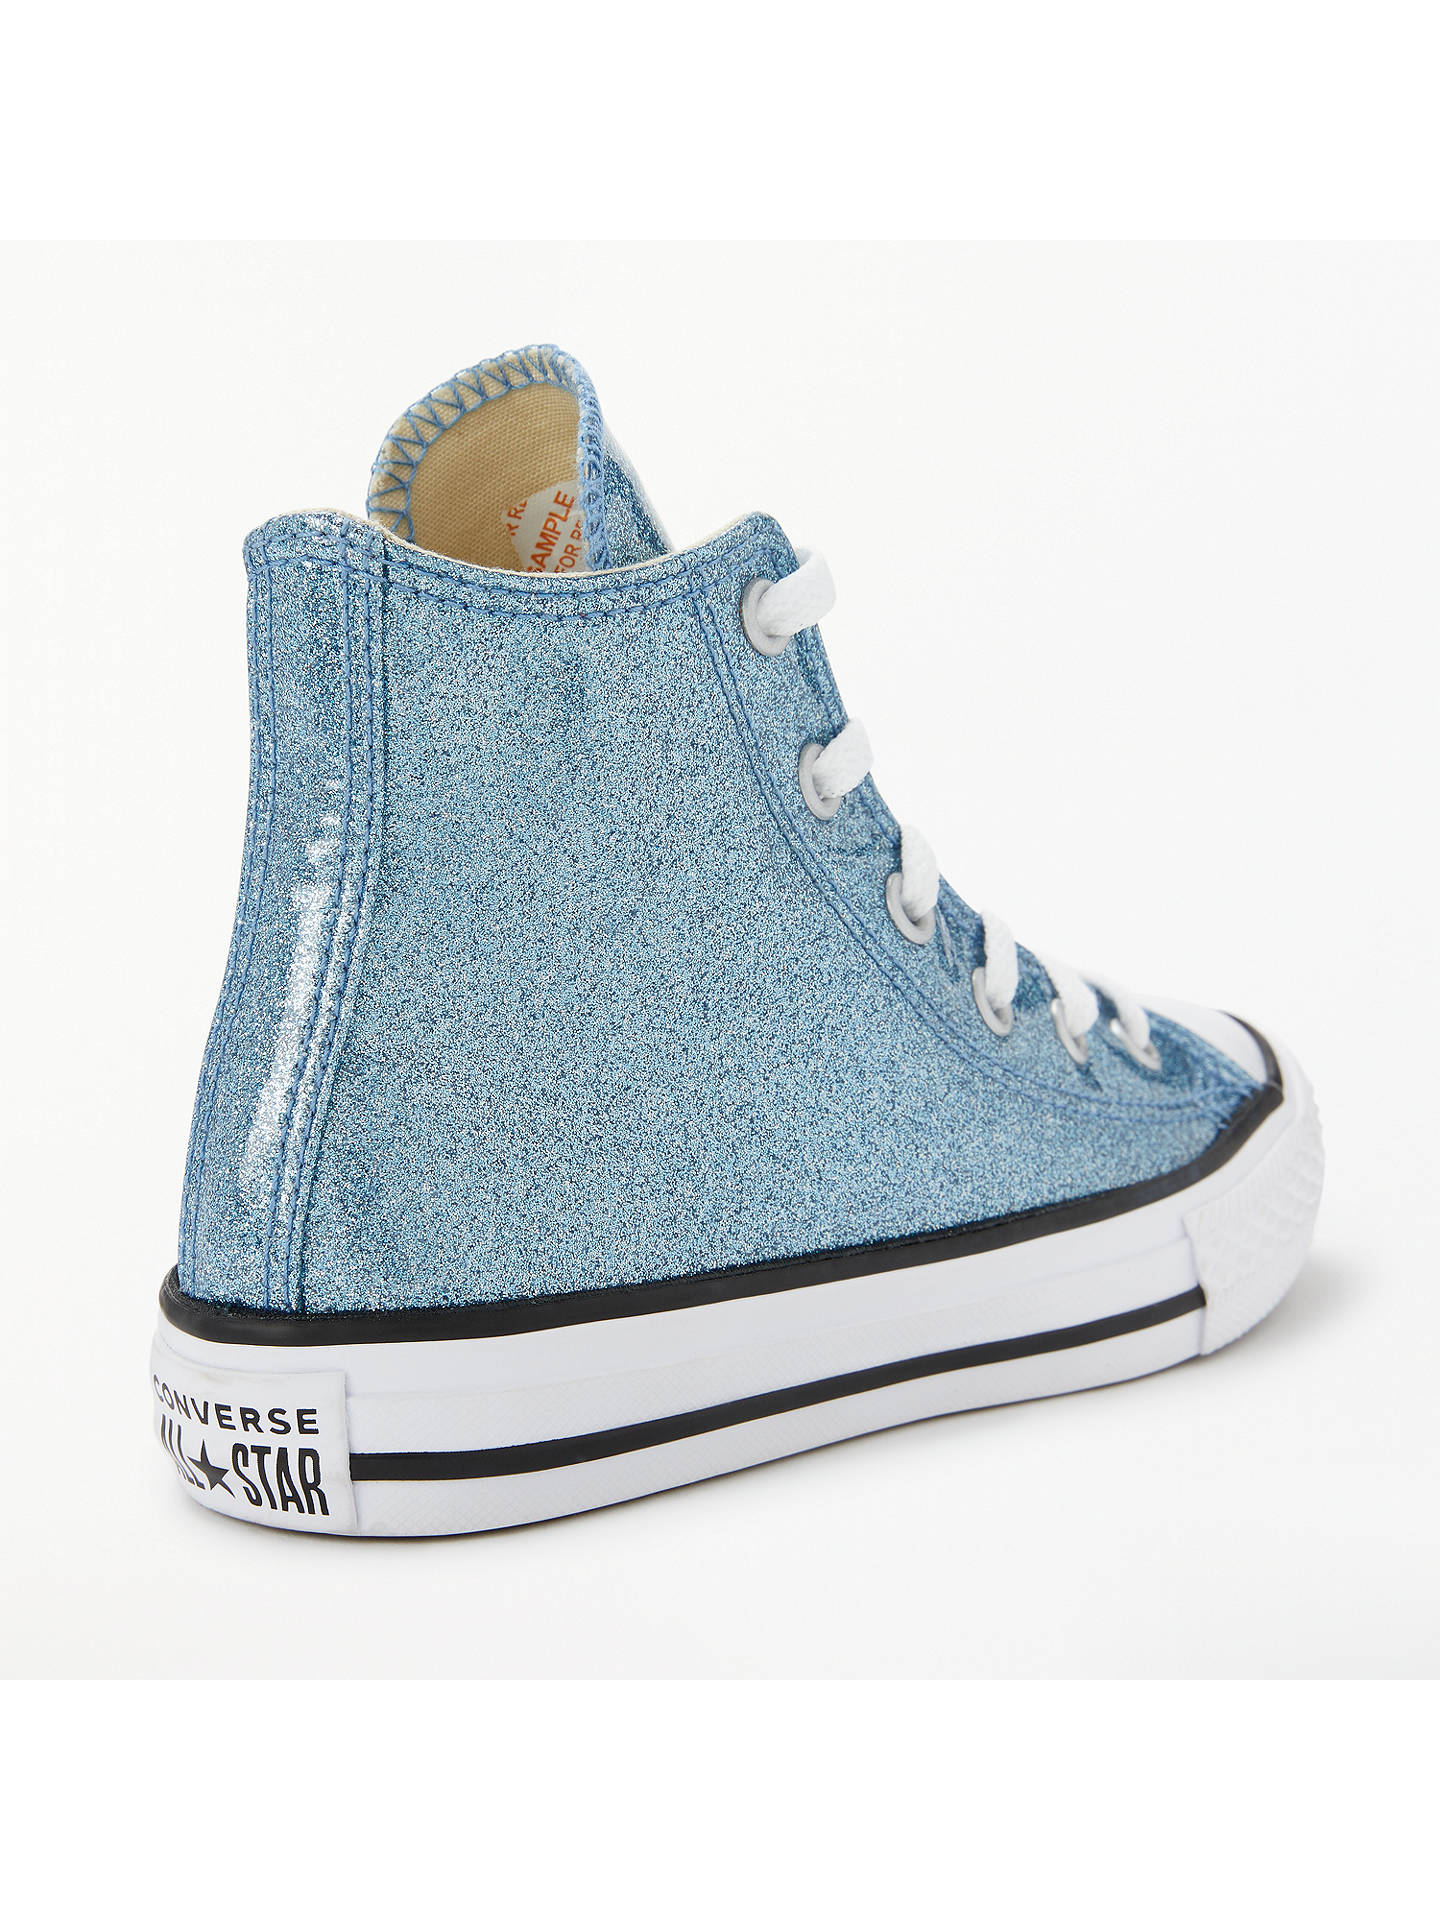 559bf4f9f5c8 ... Buy Converse Chuck Taylor All Star Core Hi-Top Trainers